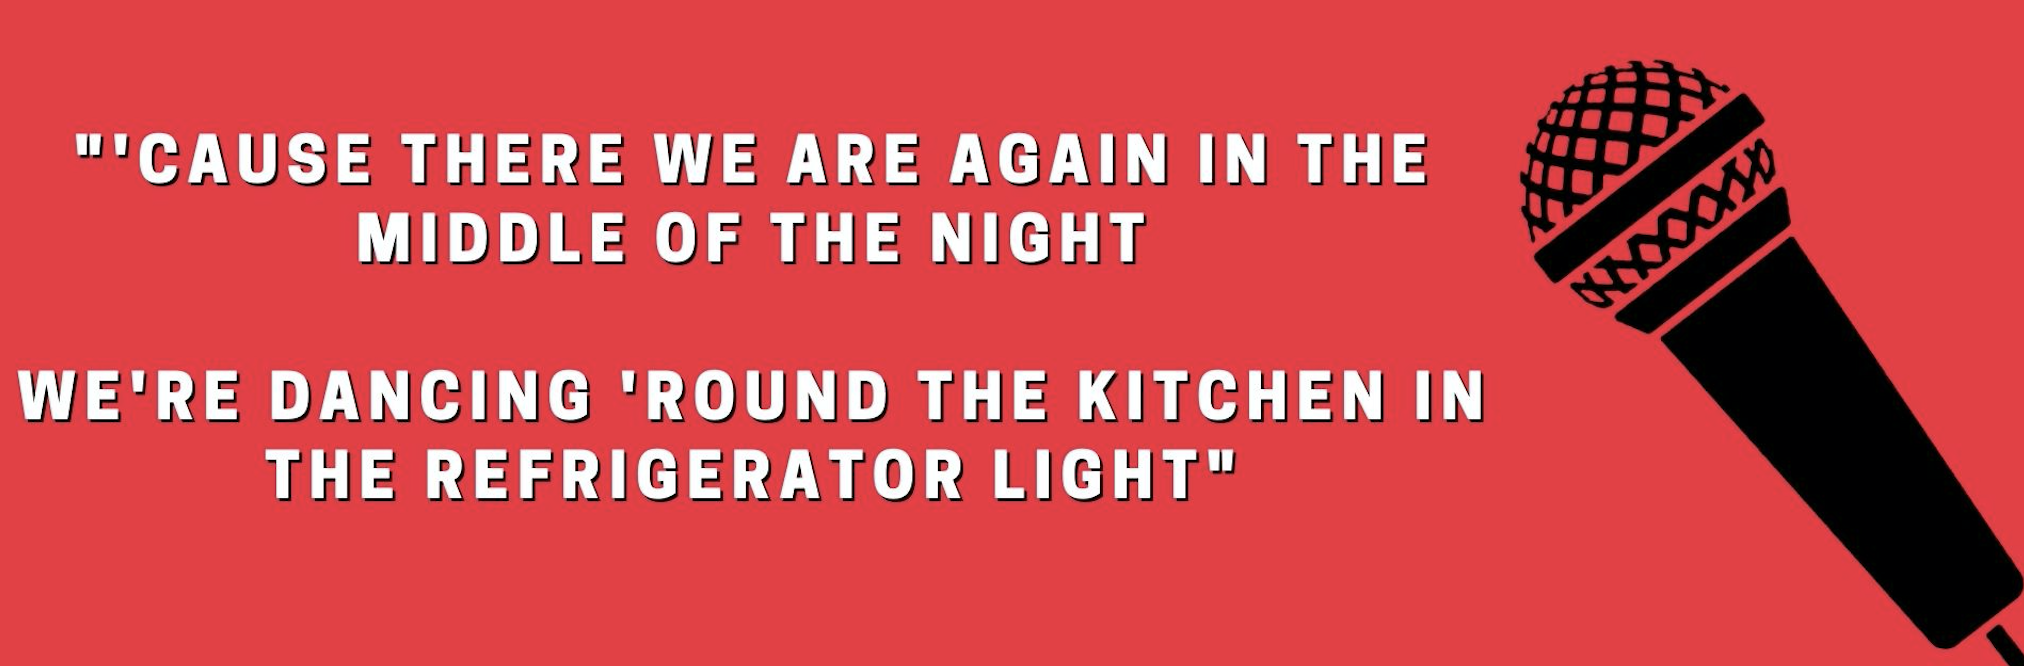 'Cause there we are again in the middle of the night We're dancing 'round the kitchen in the refrigerator light